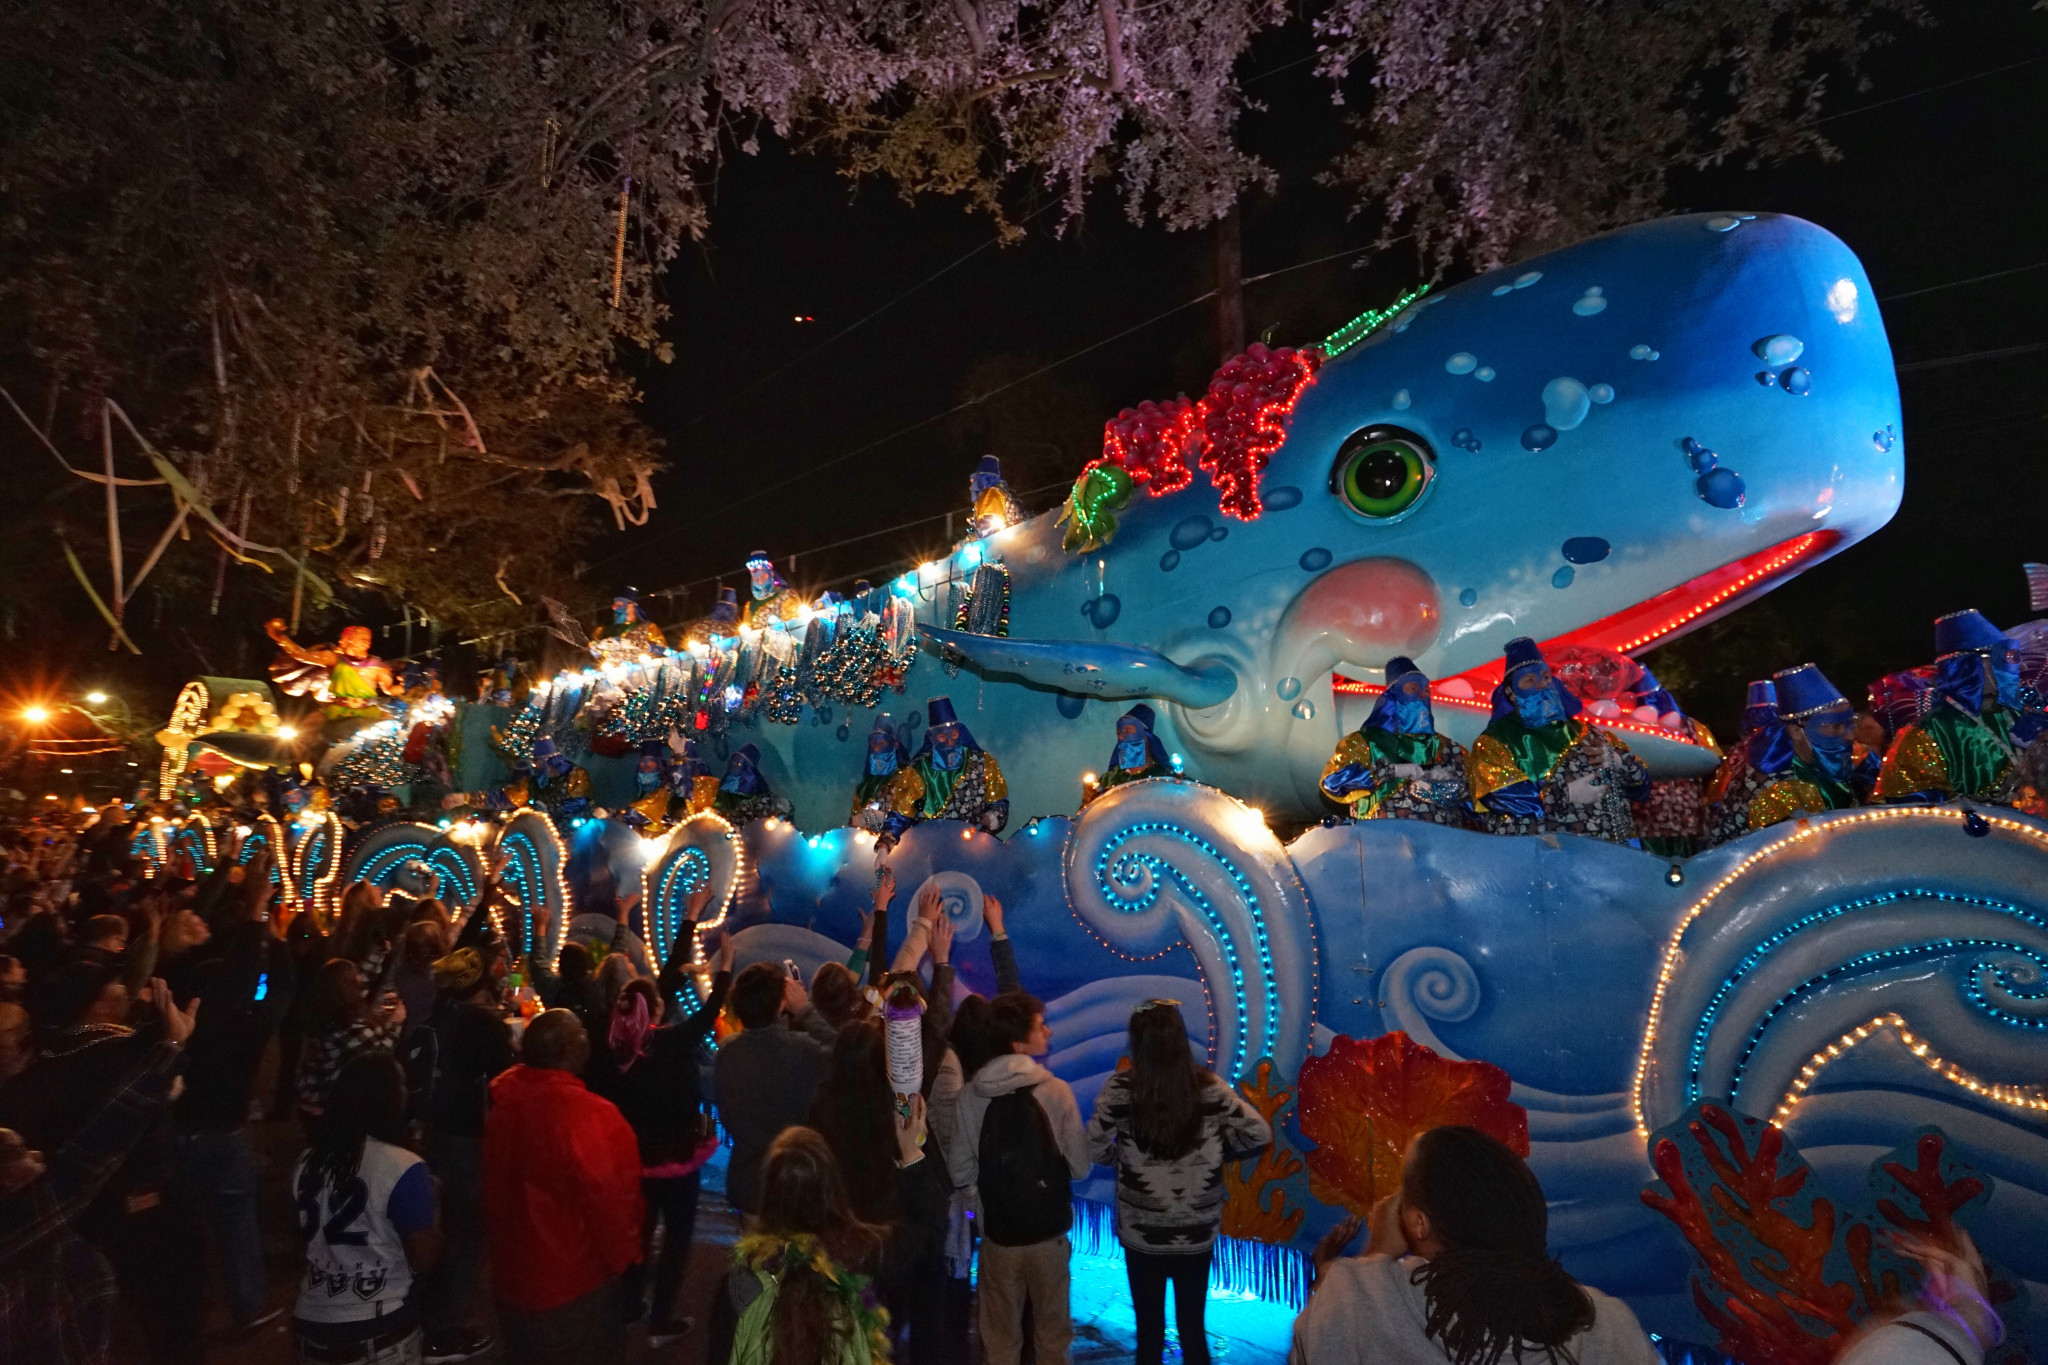 A float in the Bacchus parade. (Photo: Paul Broussard)